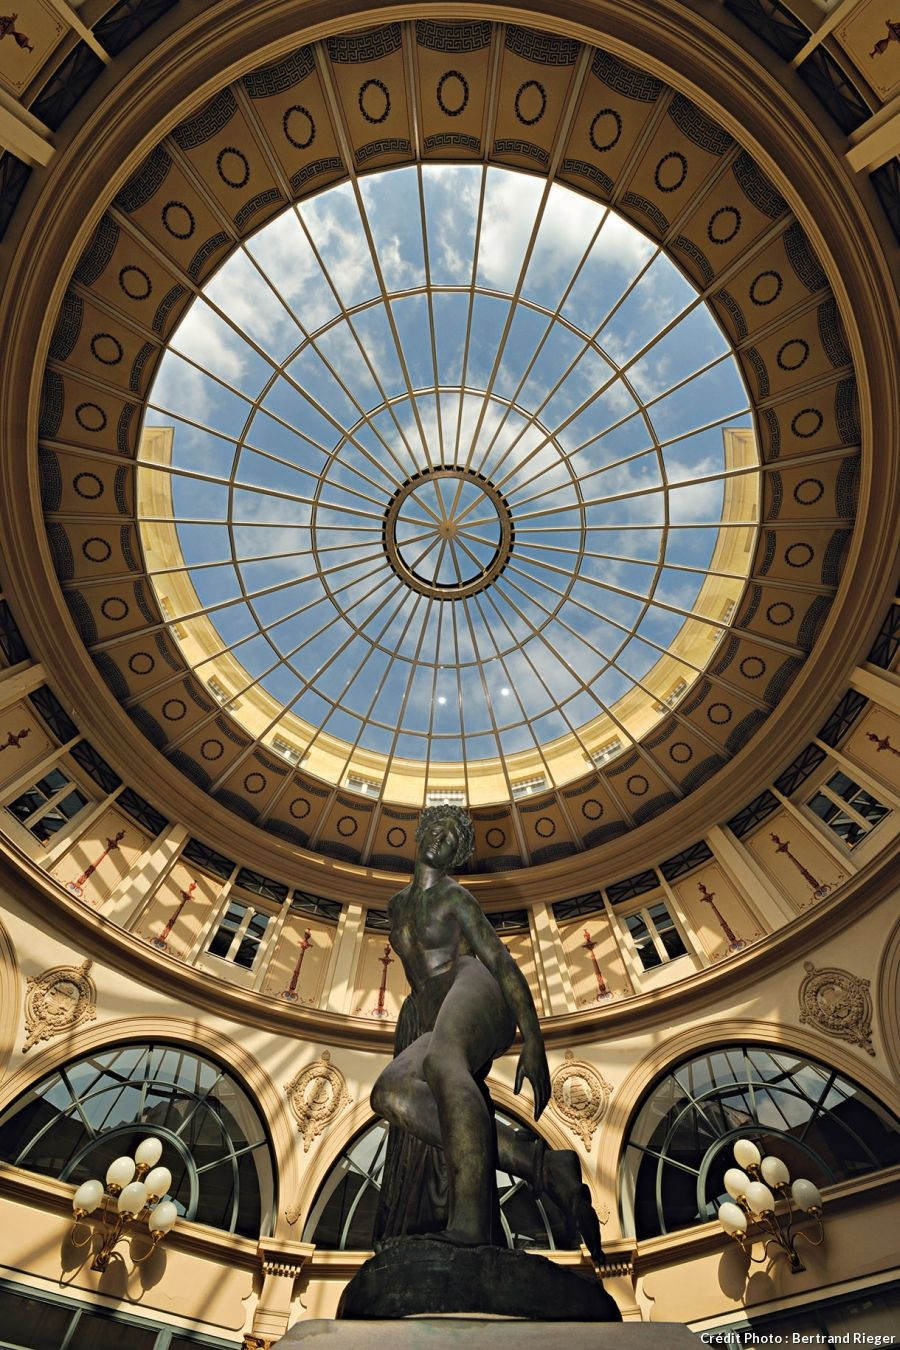 (2/9) bourse district - Galerie Colbert  4 rue Vivienne - a short walk from its main rival, Galerie Vivienne. This pretty covered arcade belongs to the Bibliothèque Nationale, and unlike other Parisian arcades, there are no shops here. Orientated towards culture, it houses the Institut Nationale d'Histoire de l'Art (INHA) and the Institut National du Patrimoine (INP). However, it is open to the public to discover the magnificent rotunda topped with a glass dome.